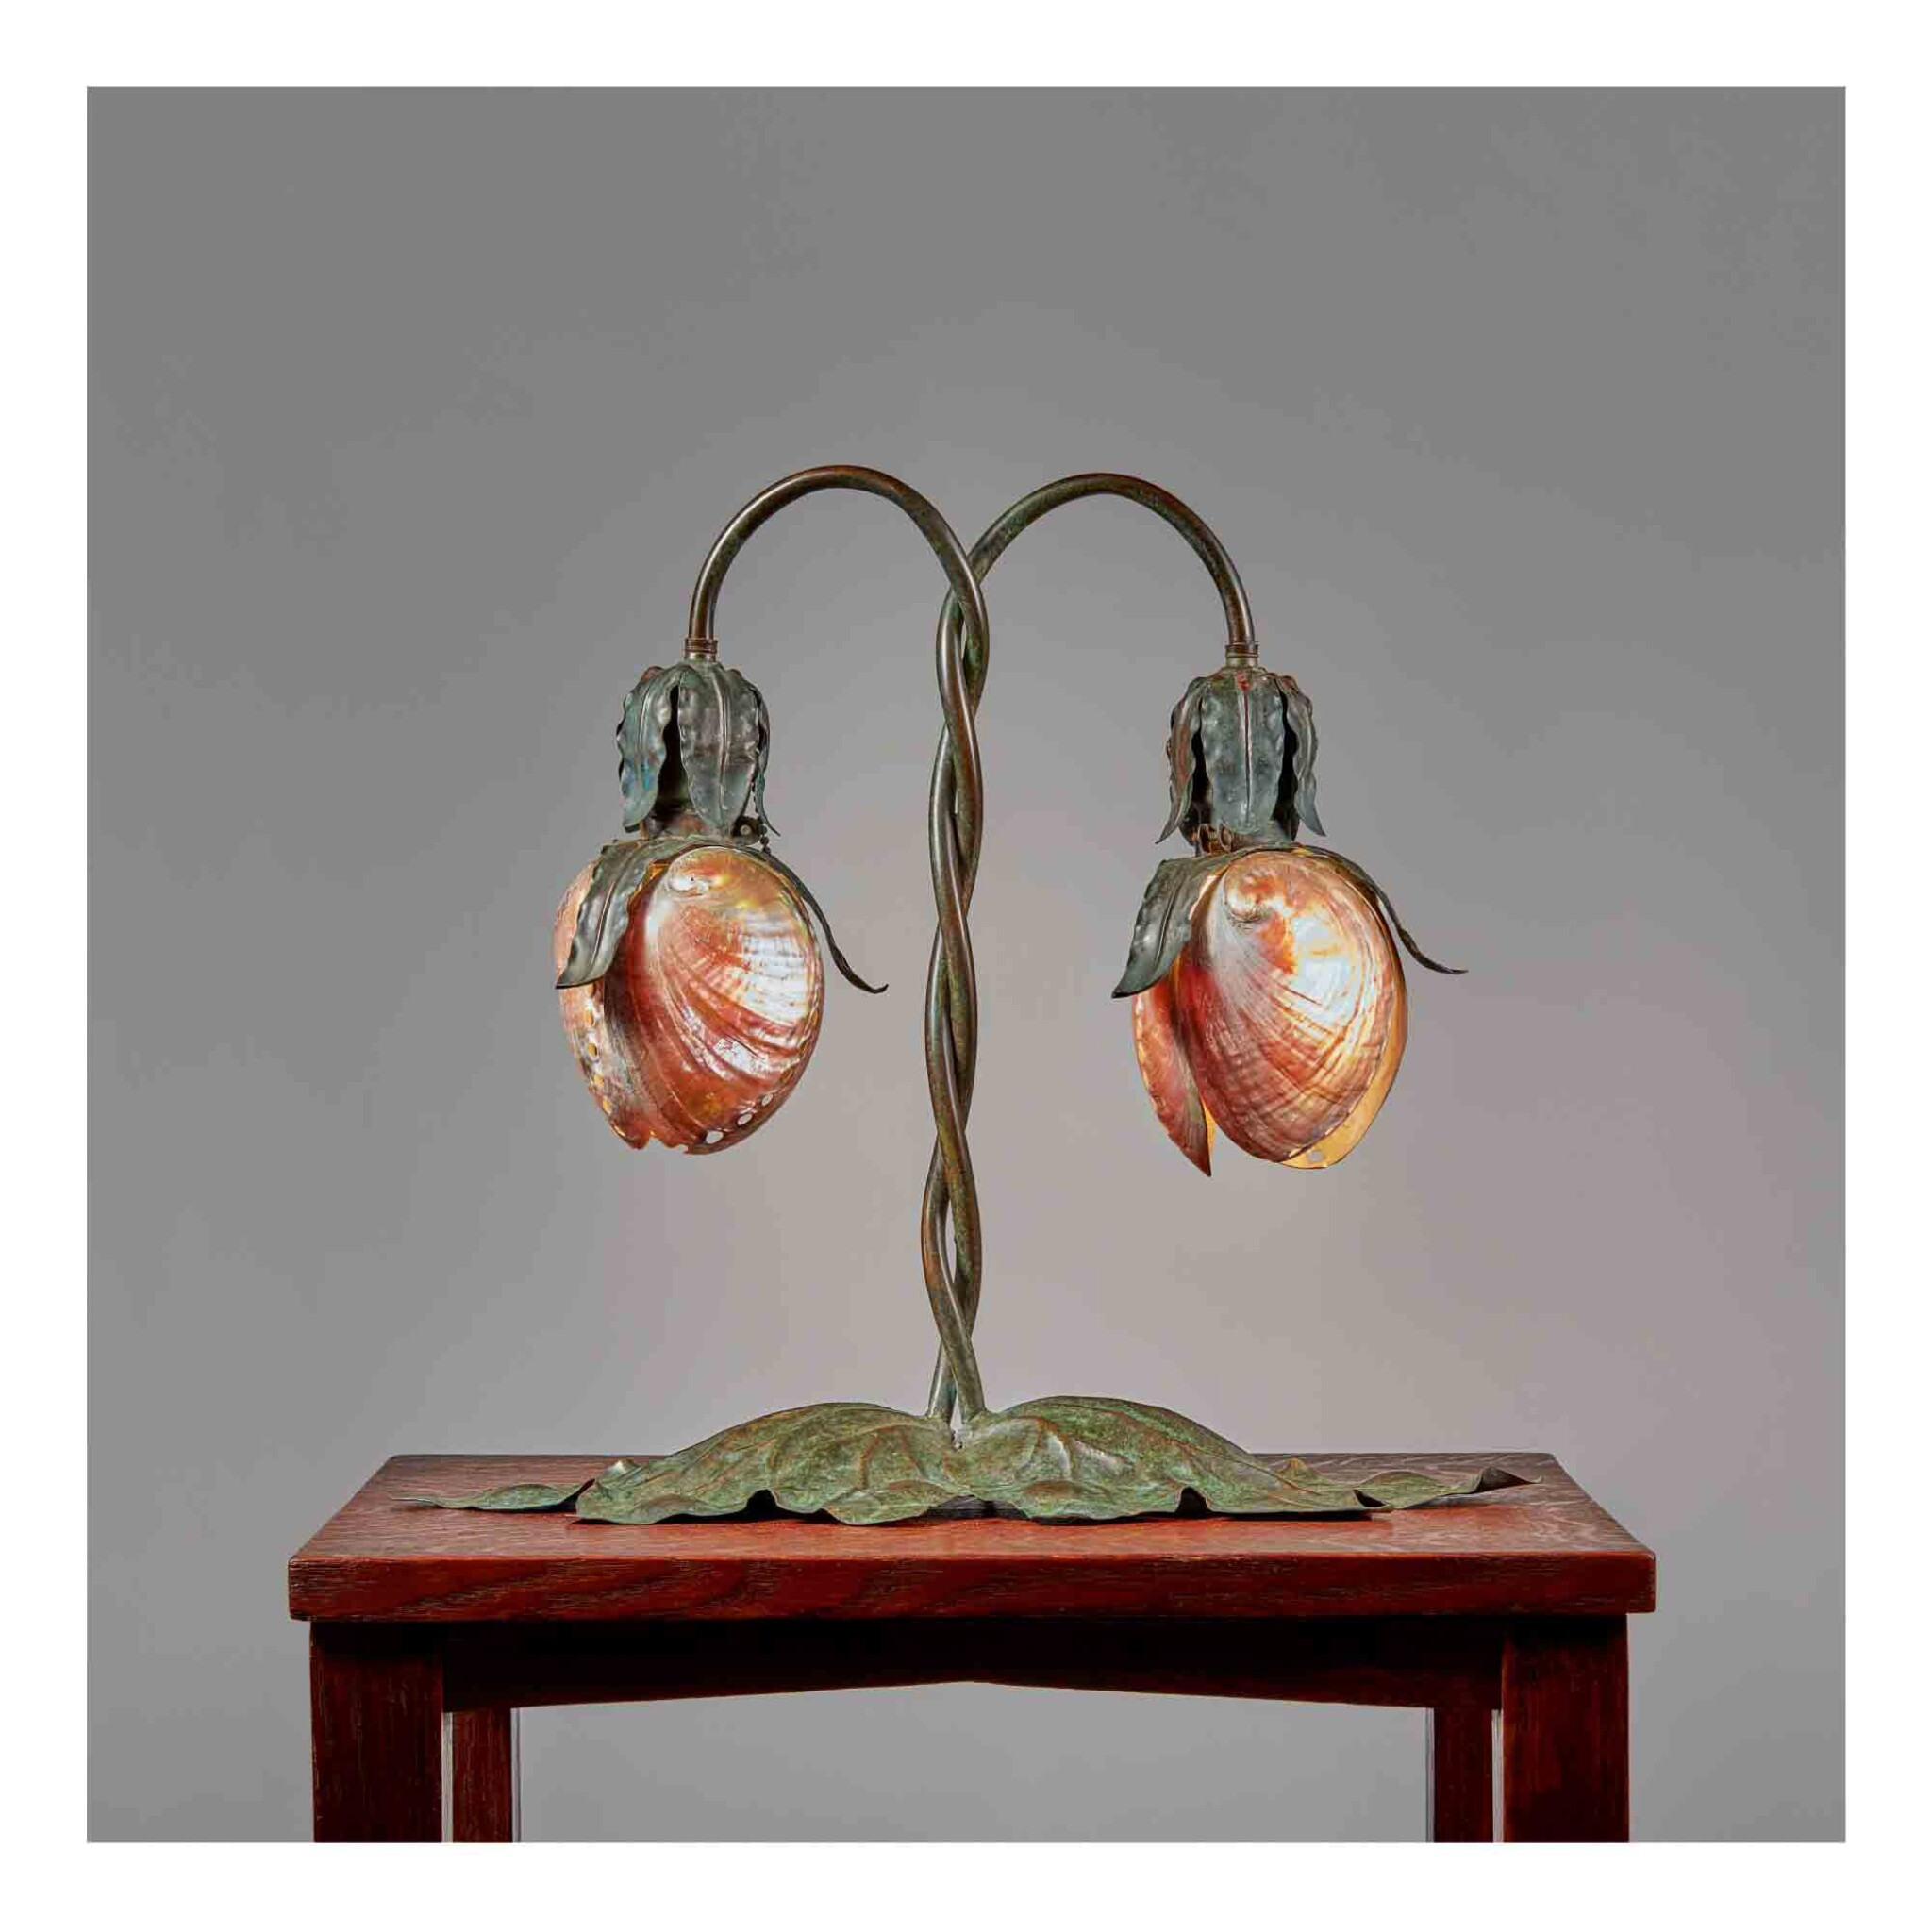 View 1 of Lot 330. Two-light Table Lamp.